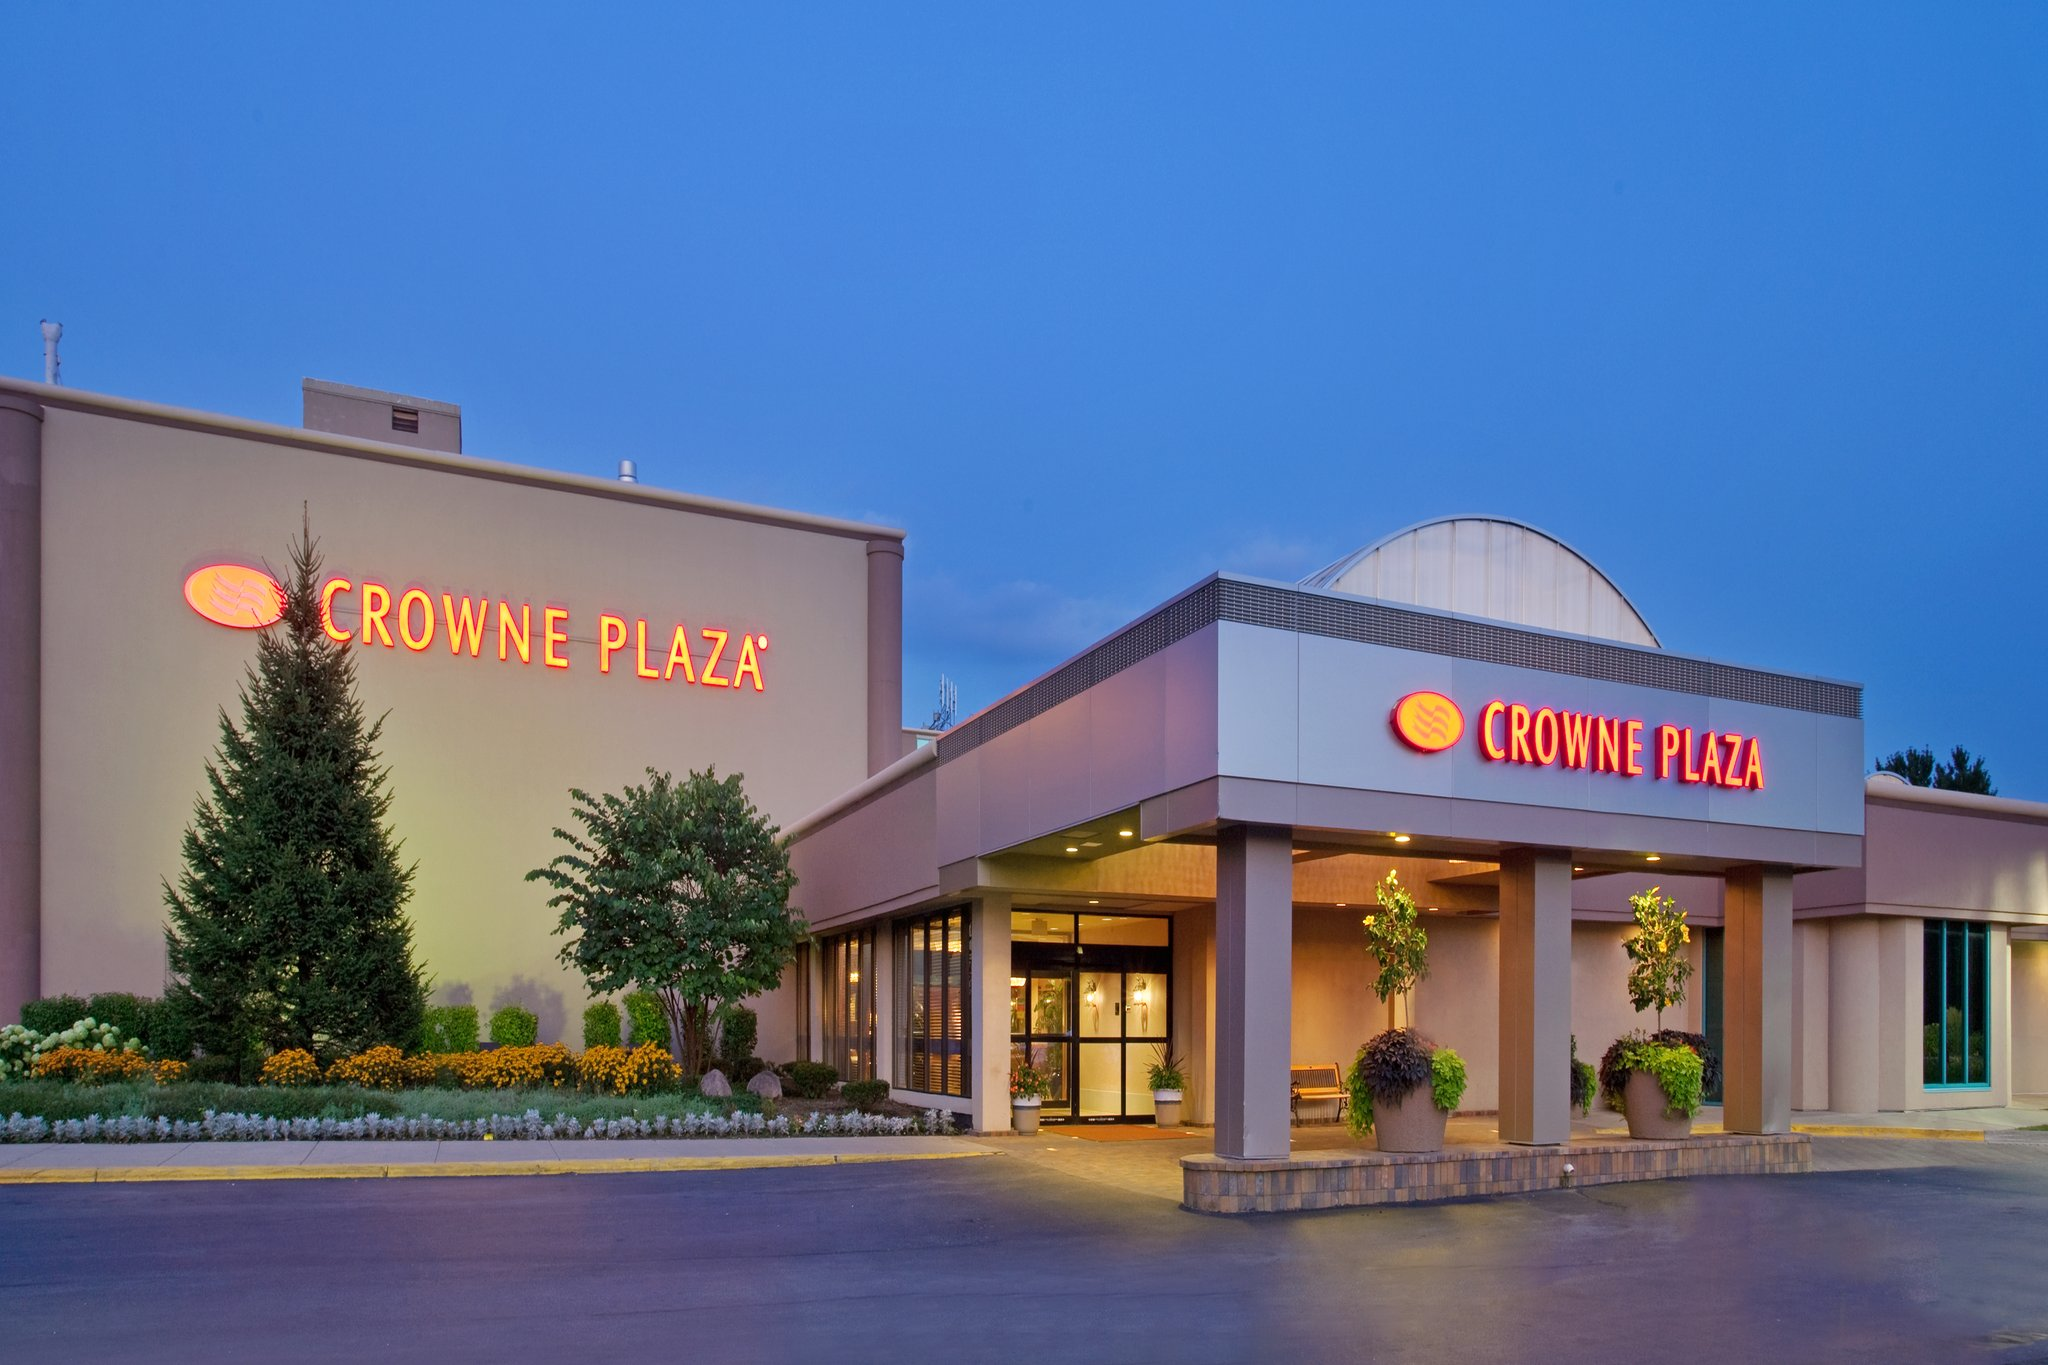 Crowne plaza hotel chicago northbrook photos for Chicago lodging